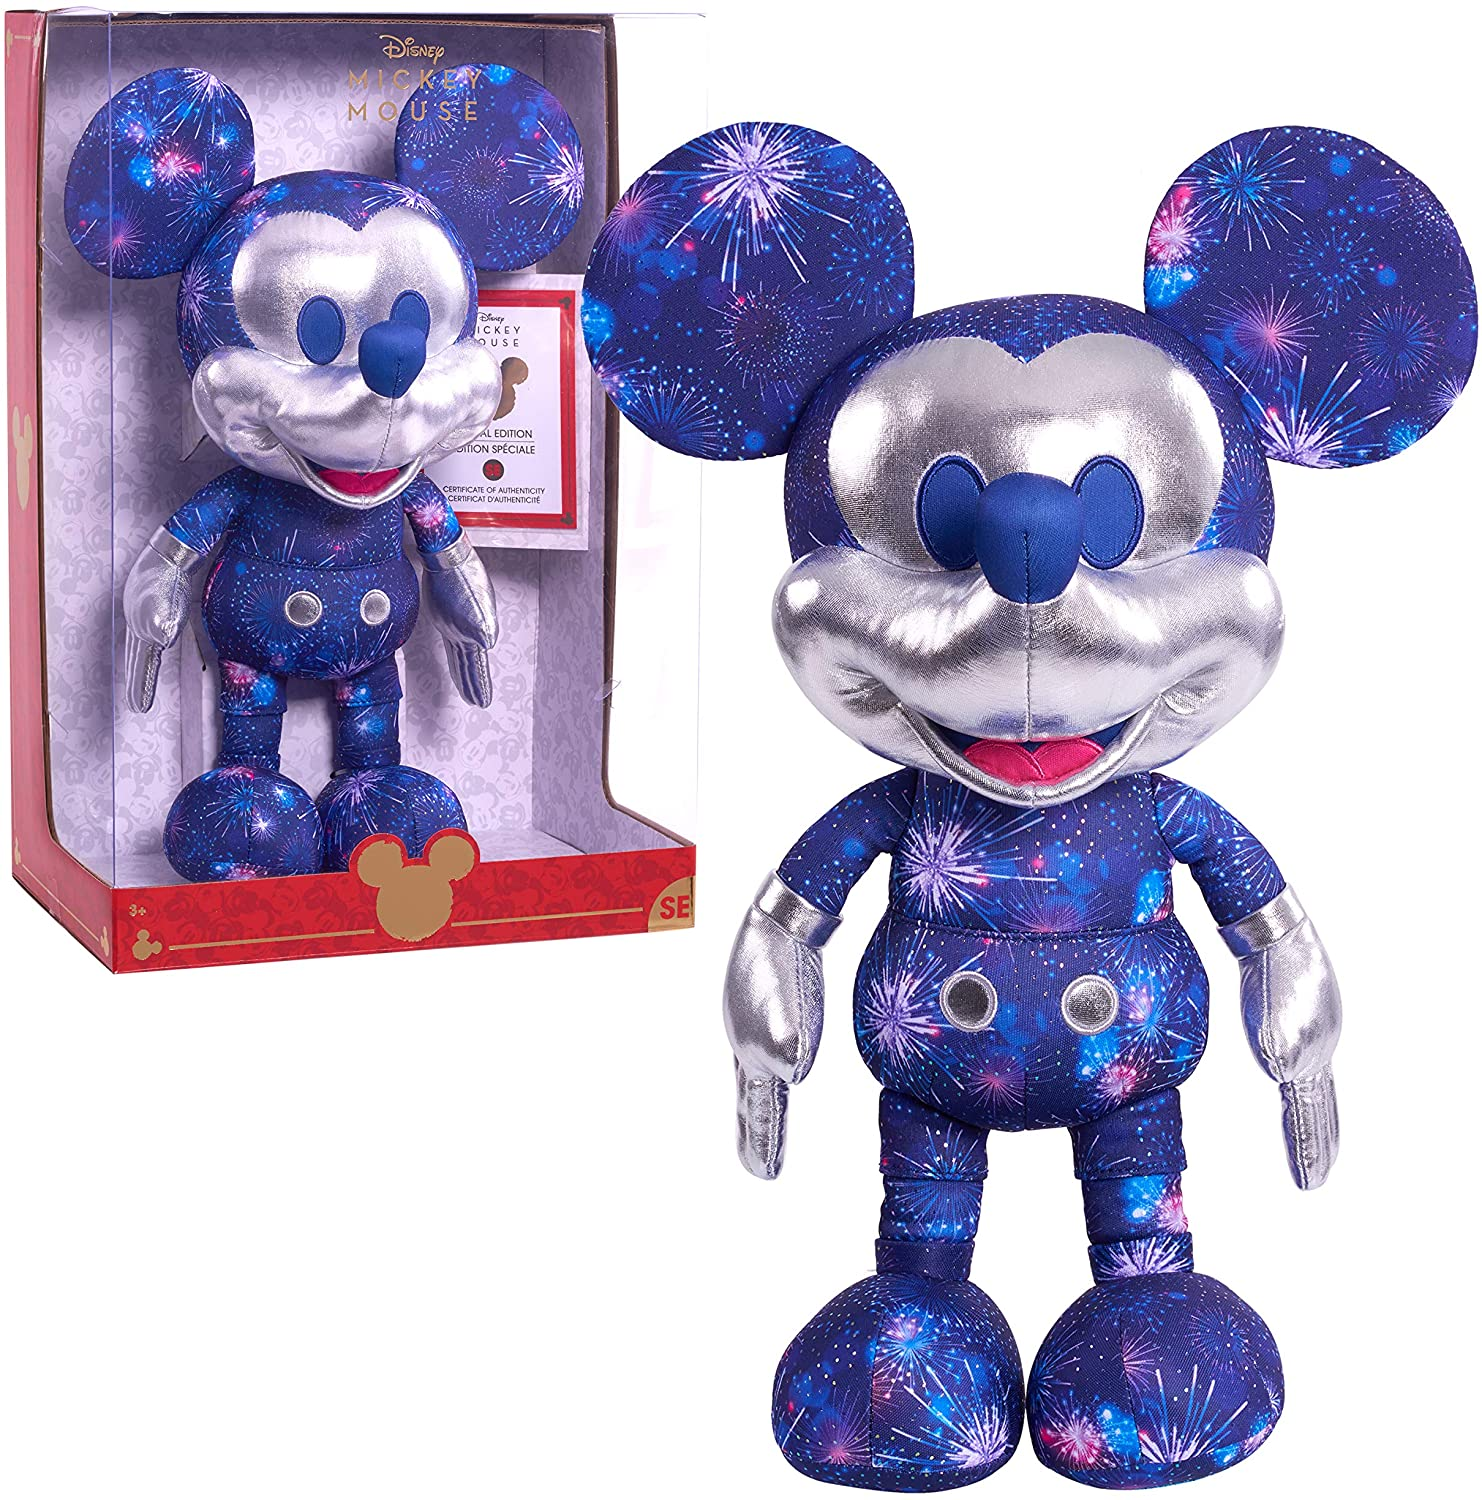 Limited Edition Disney Fantasy in the Sky Mickey Mouse Plush, Amazon Exclusive